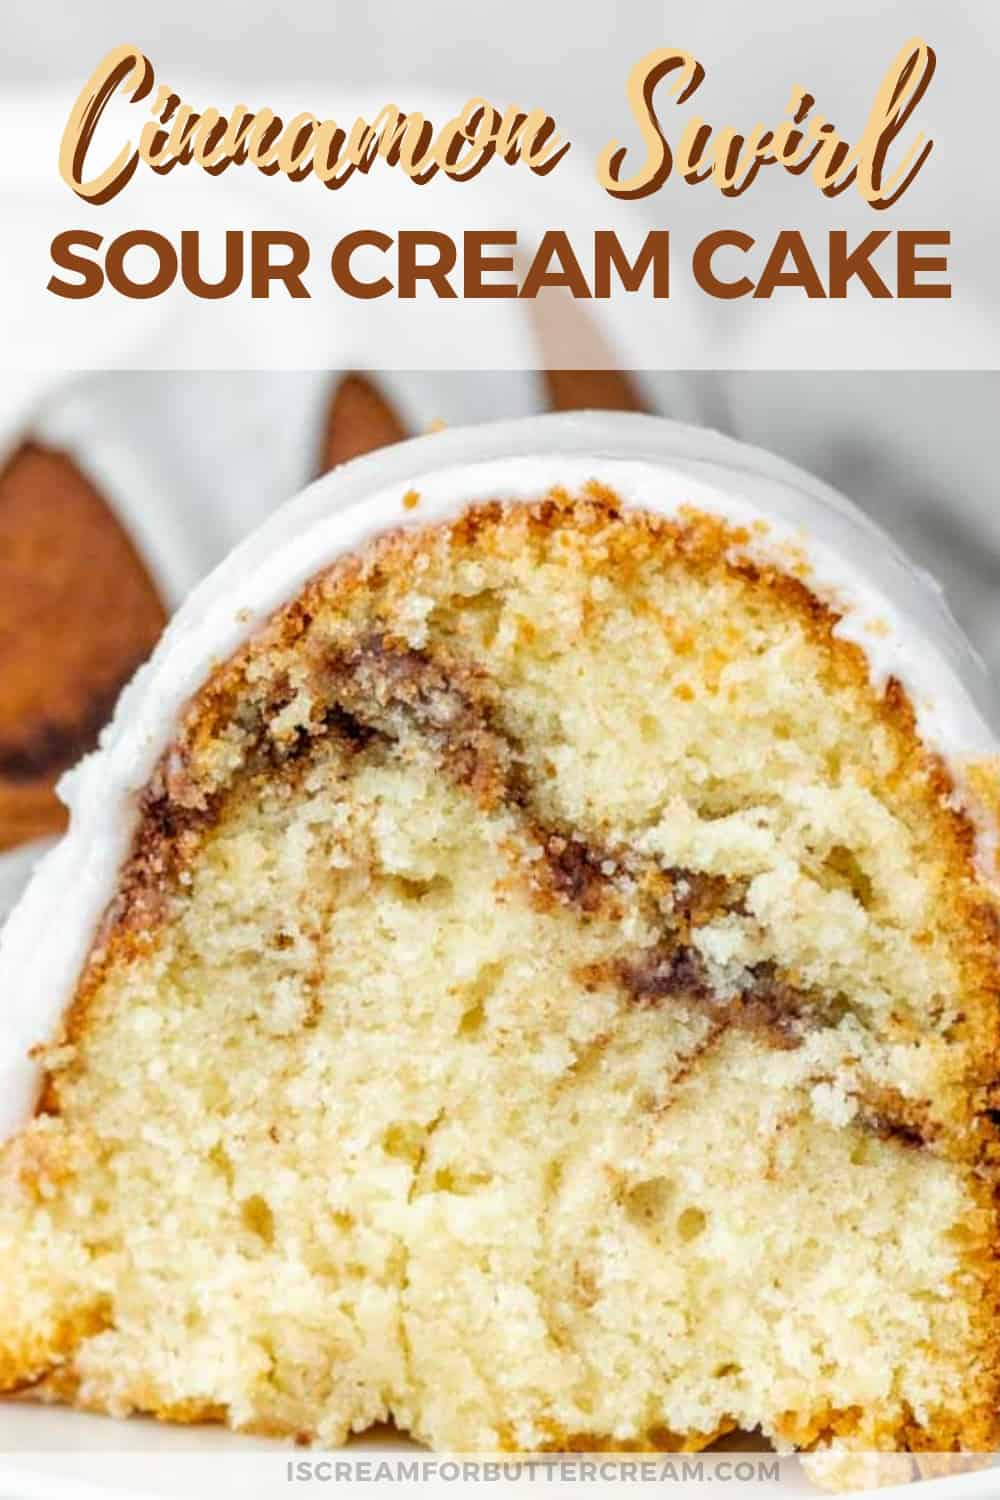 Cinnamon Swirl Sour Cream Cake New Pinterest Graphic 4